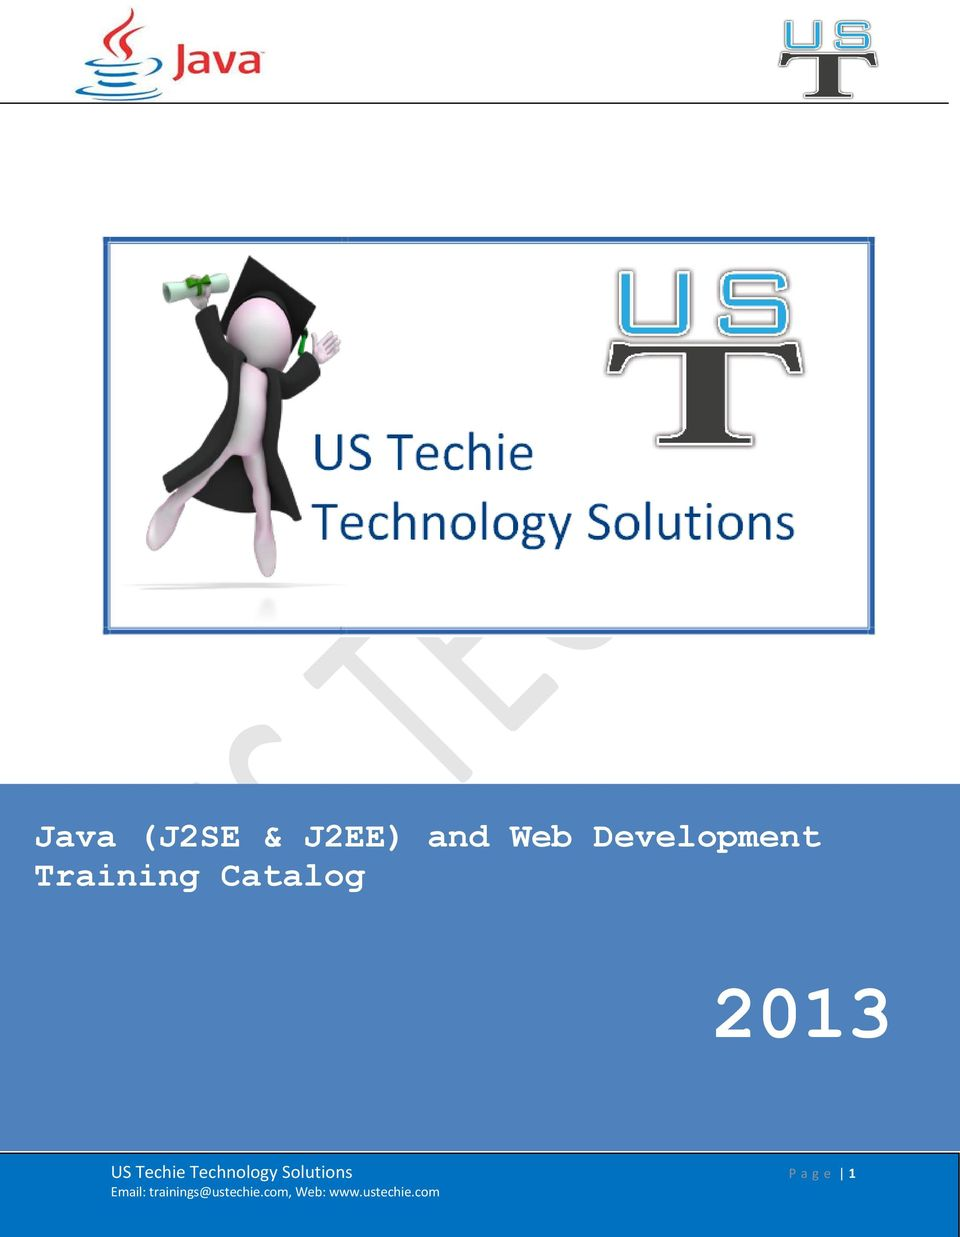 Catalog 2013 US Techie